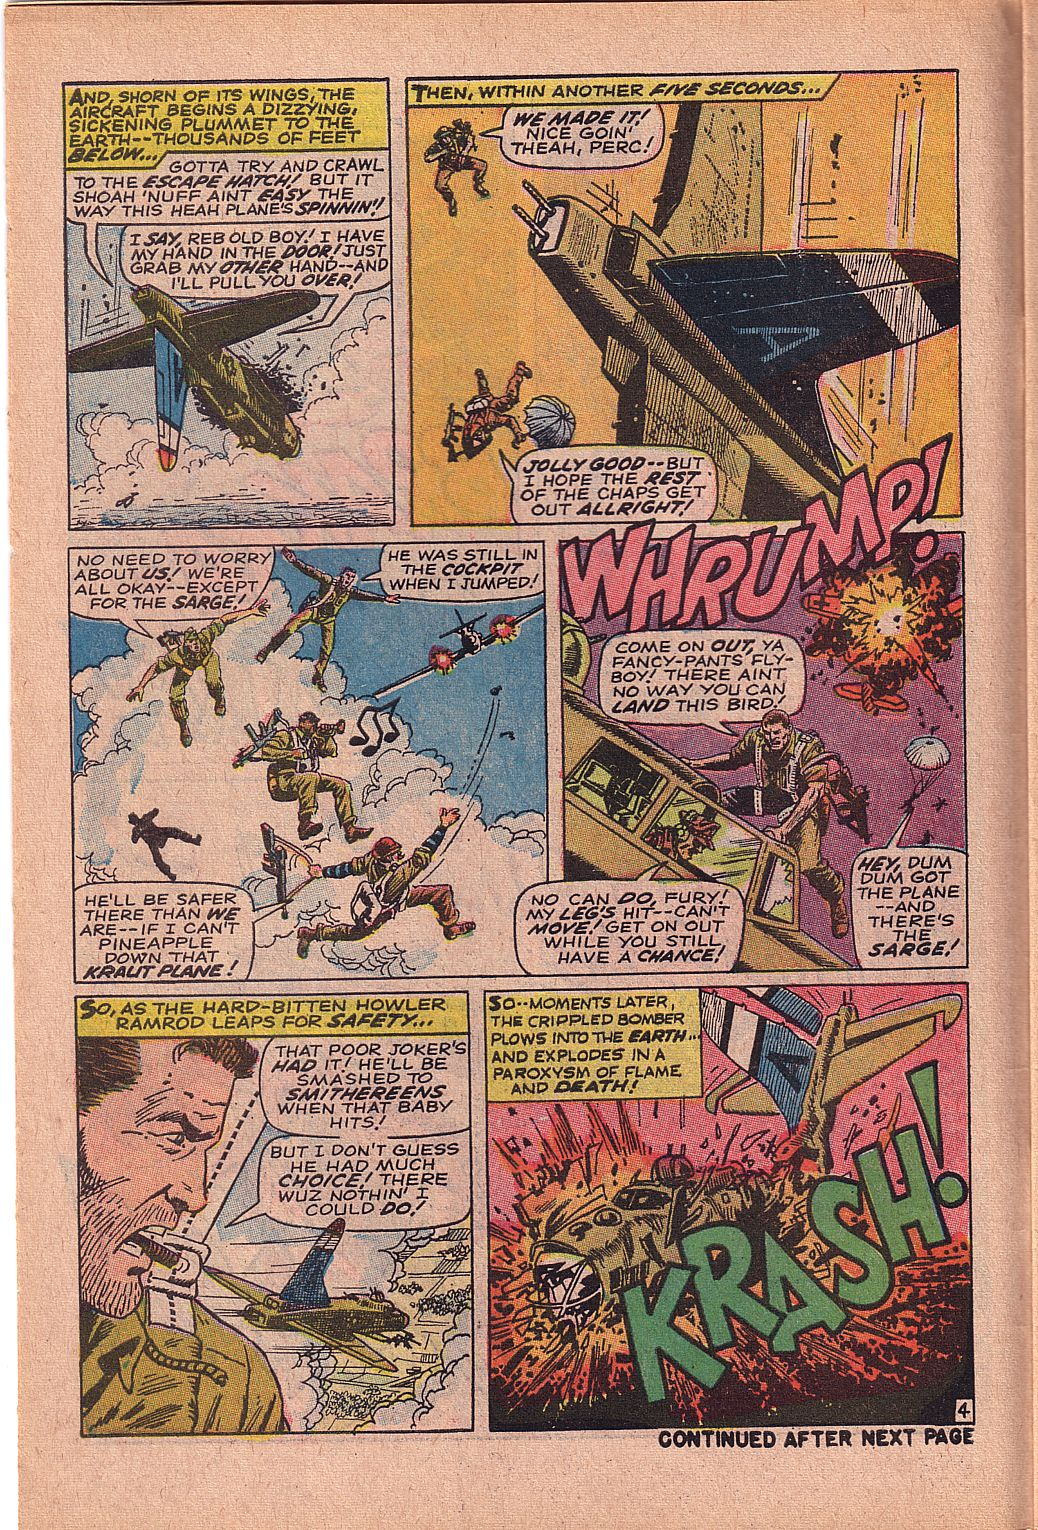 Read online Sgt. Fury comic -  Issue #52 - 6